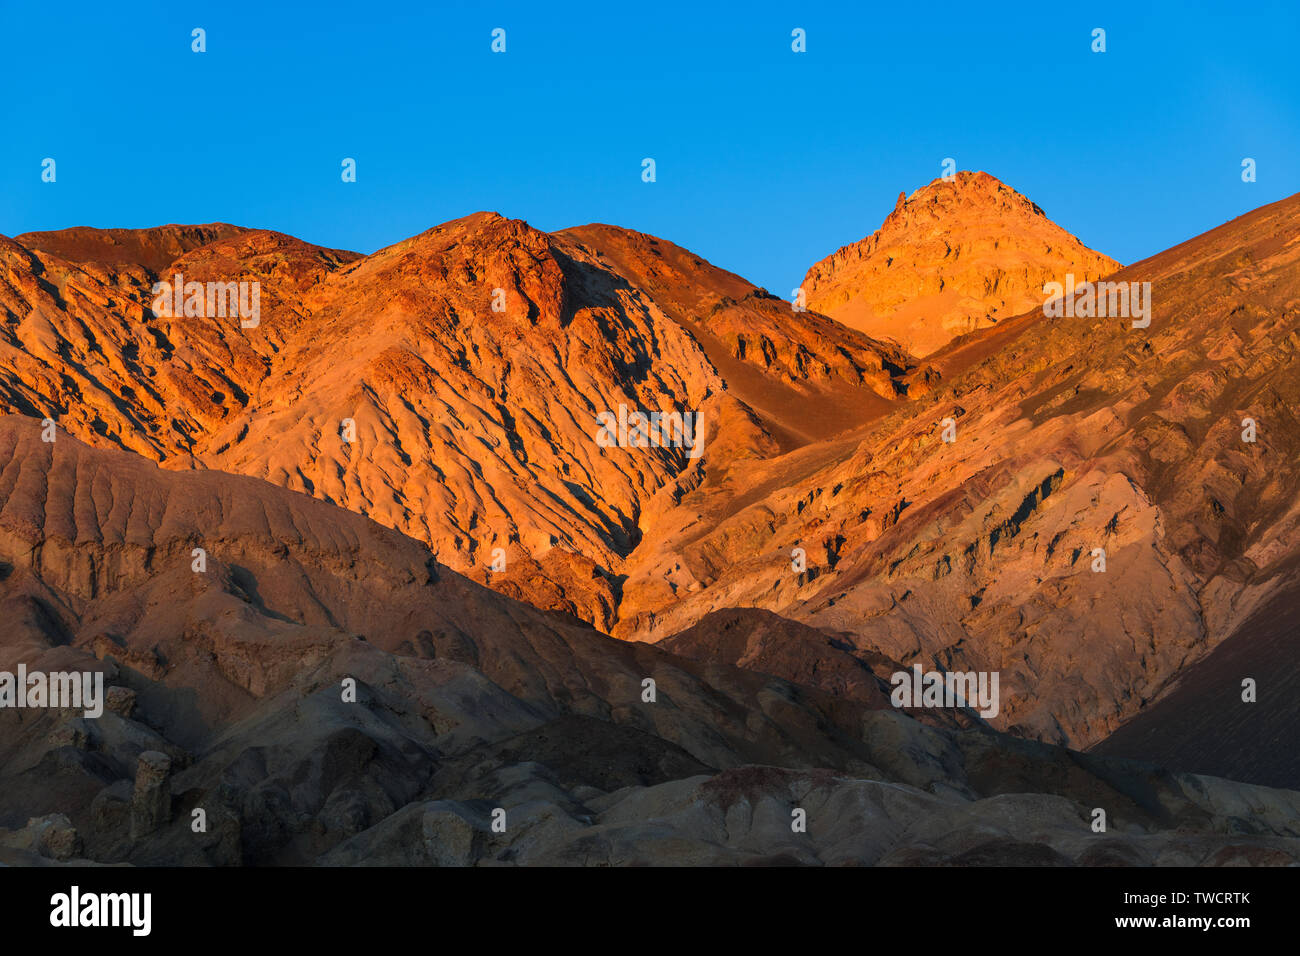 Barren desert mountains and a high peak glow in the golden hour of sunset under a perfect blue sky - Death Valley National Park, California - Stock Image